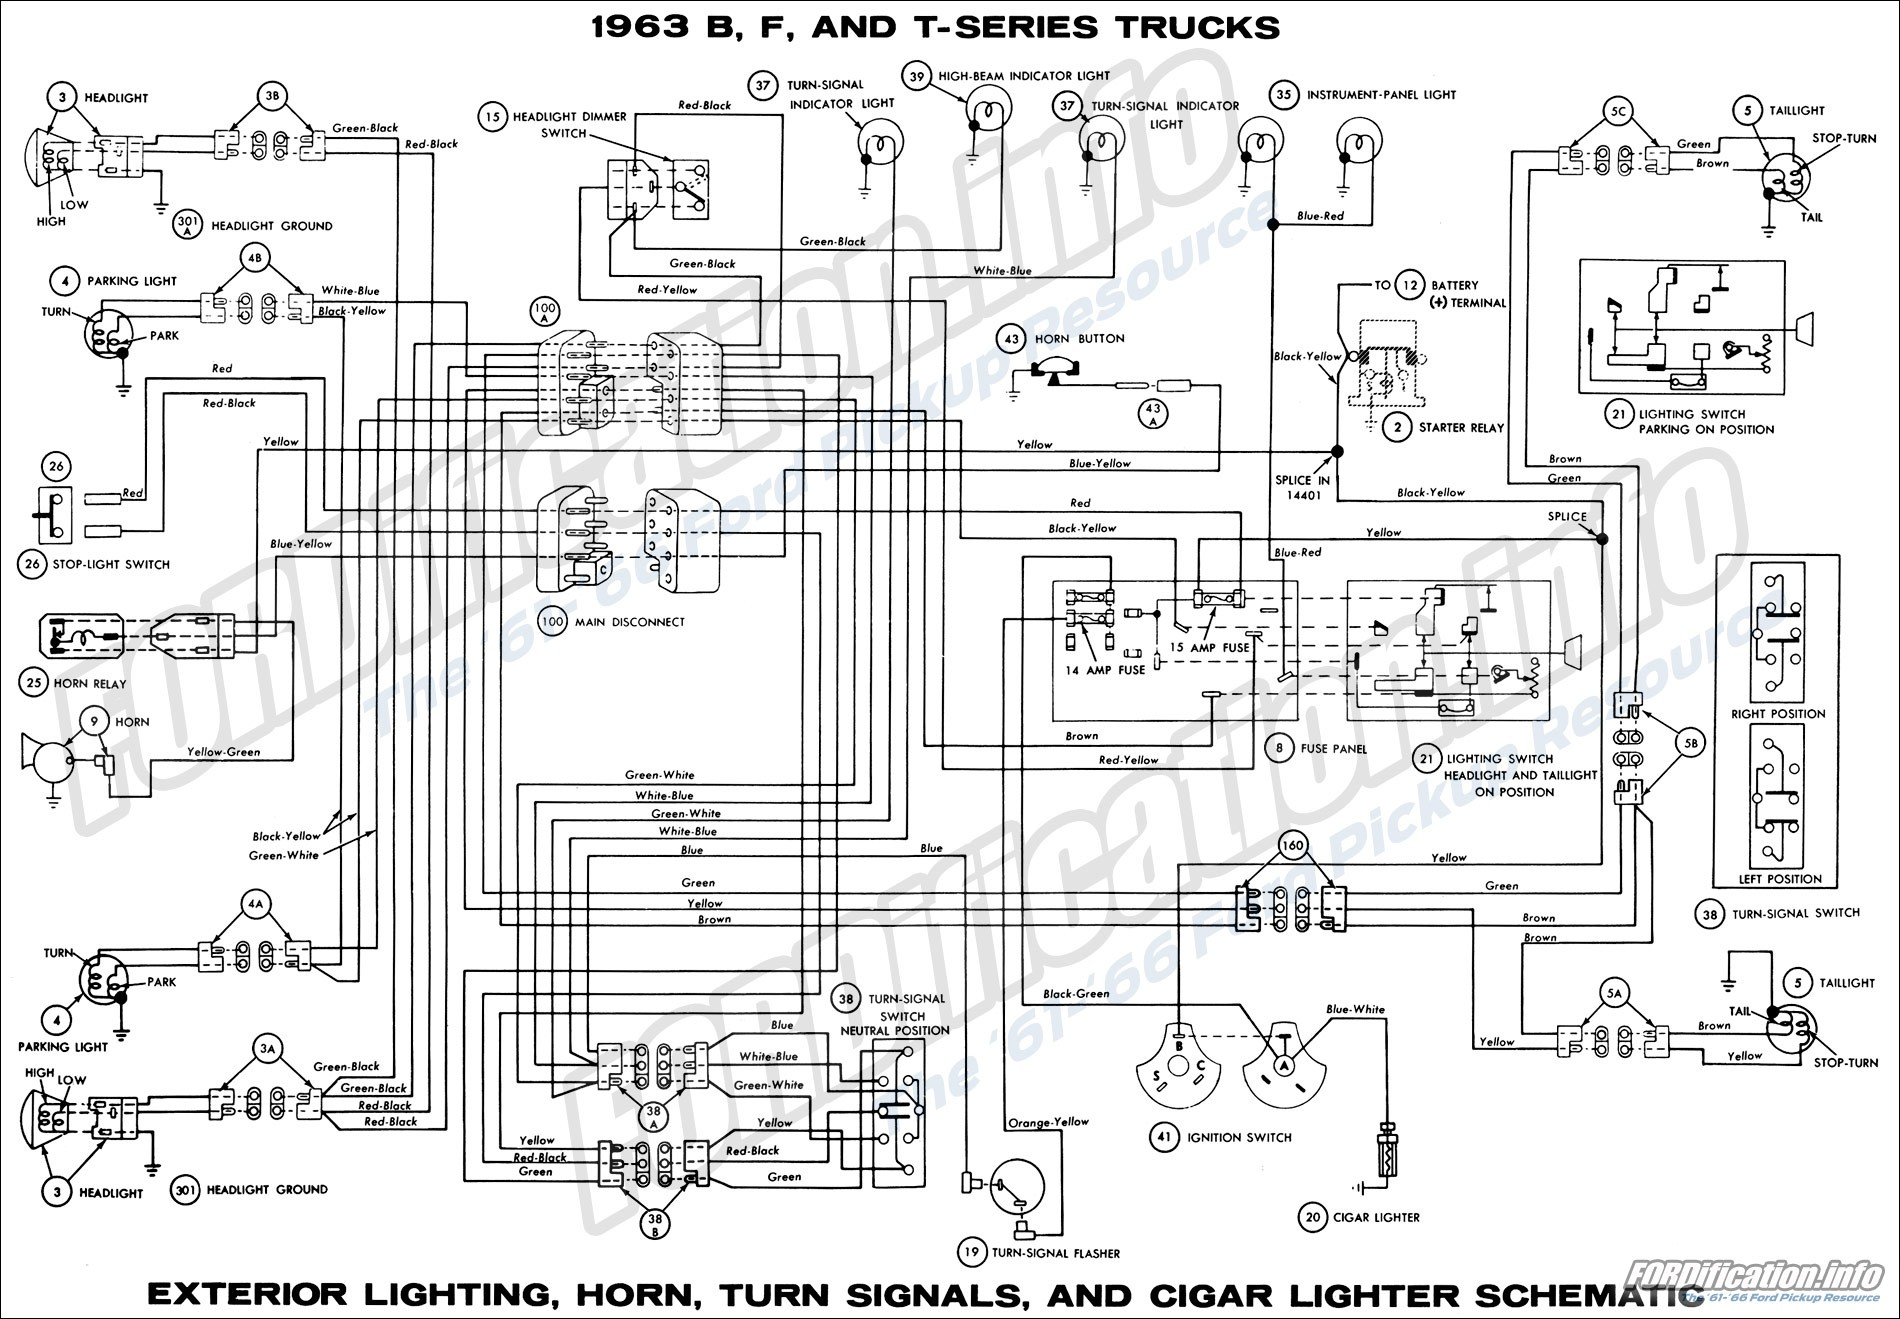 Car Cigarette Lighter Wiring Diagram 1963 ford Truck Wiring Diagrams  fordificationfo the 61 66 Of Car